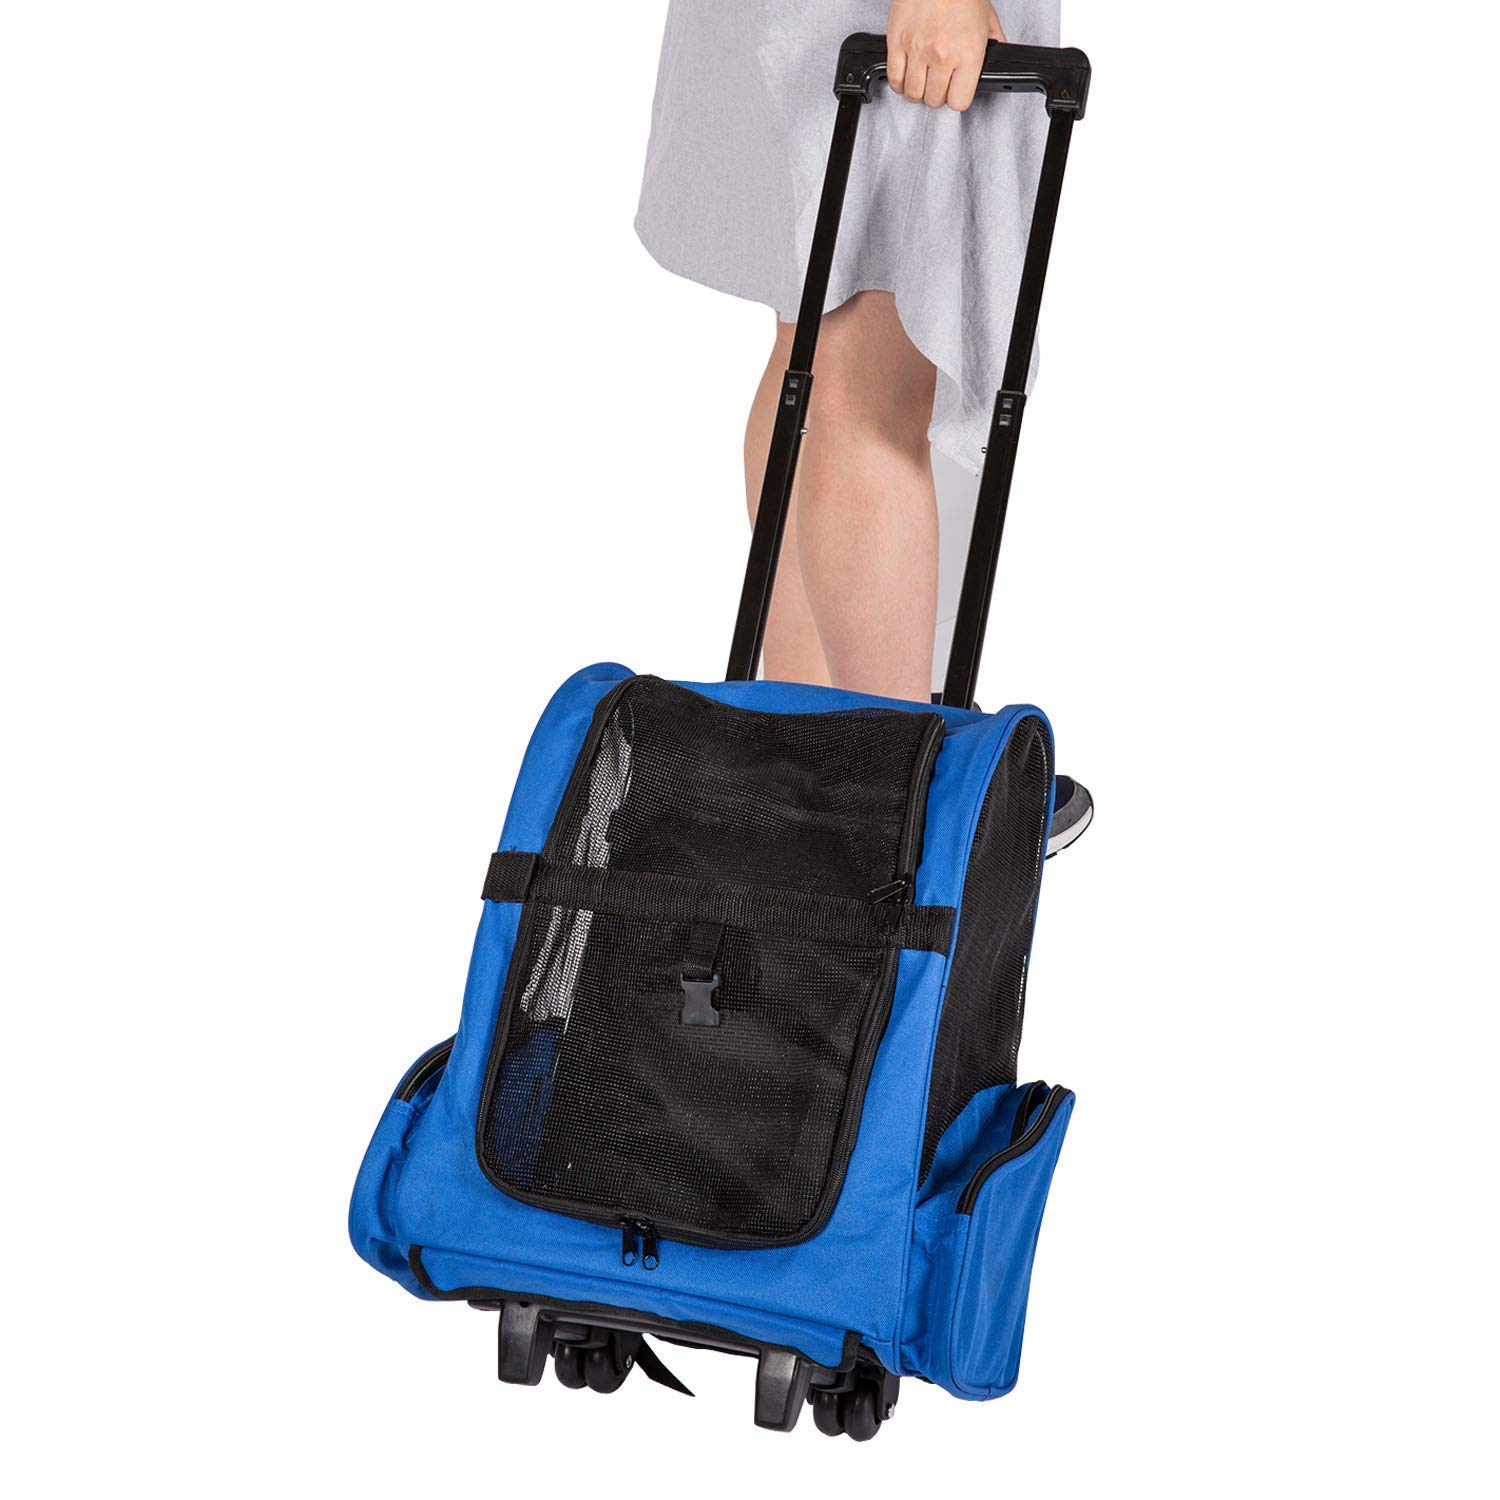 Kinbor Pet Travel Rolling Backpack Rolling Carrier for Dogs Pet Carrier with Wheels Rolling Pet Travel Tote Airline Approved with Storage Pocket